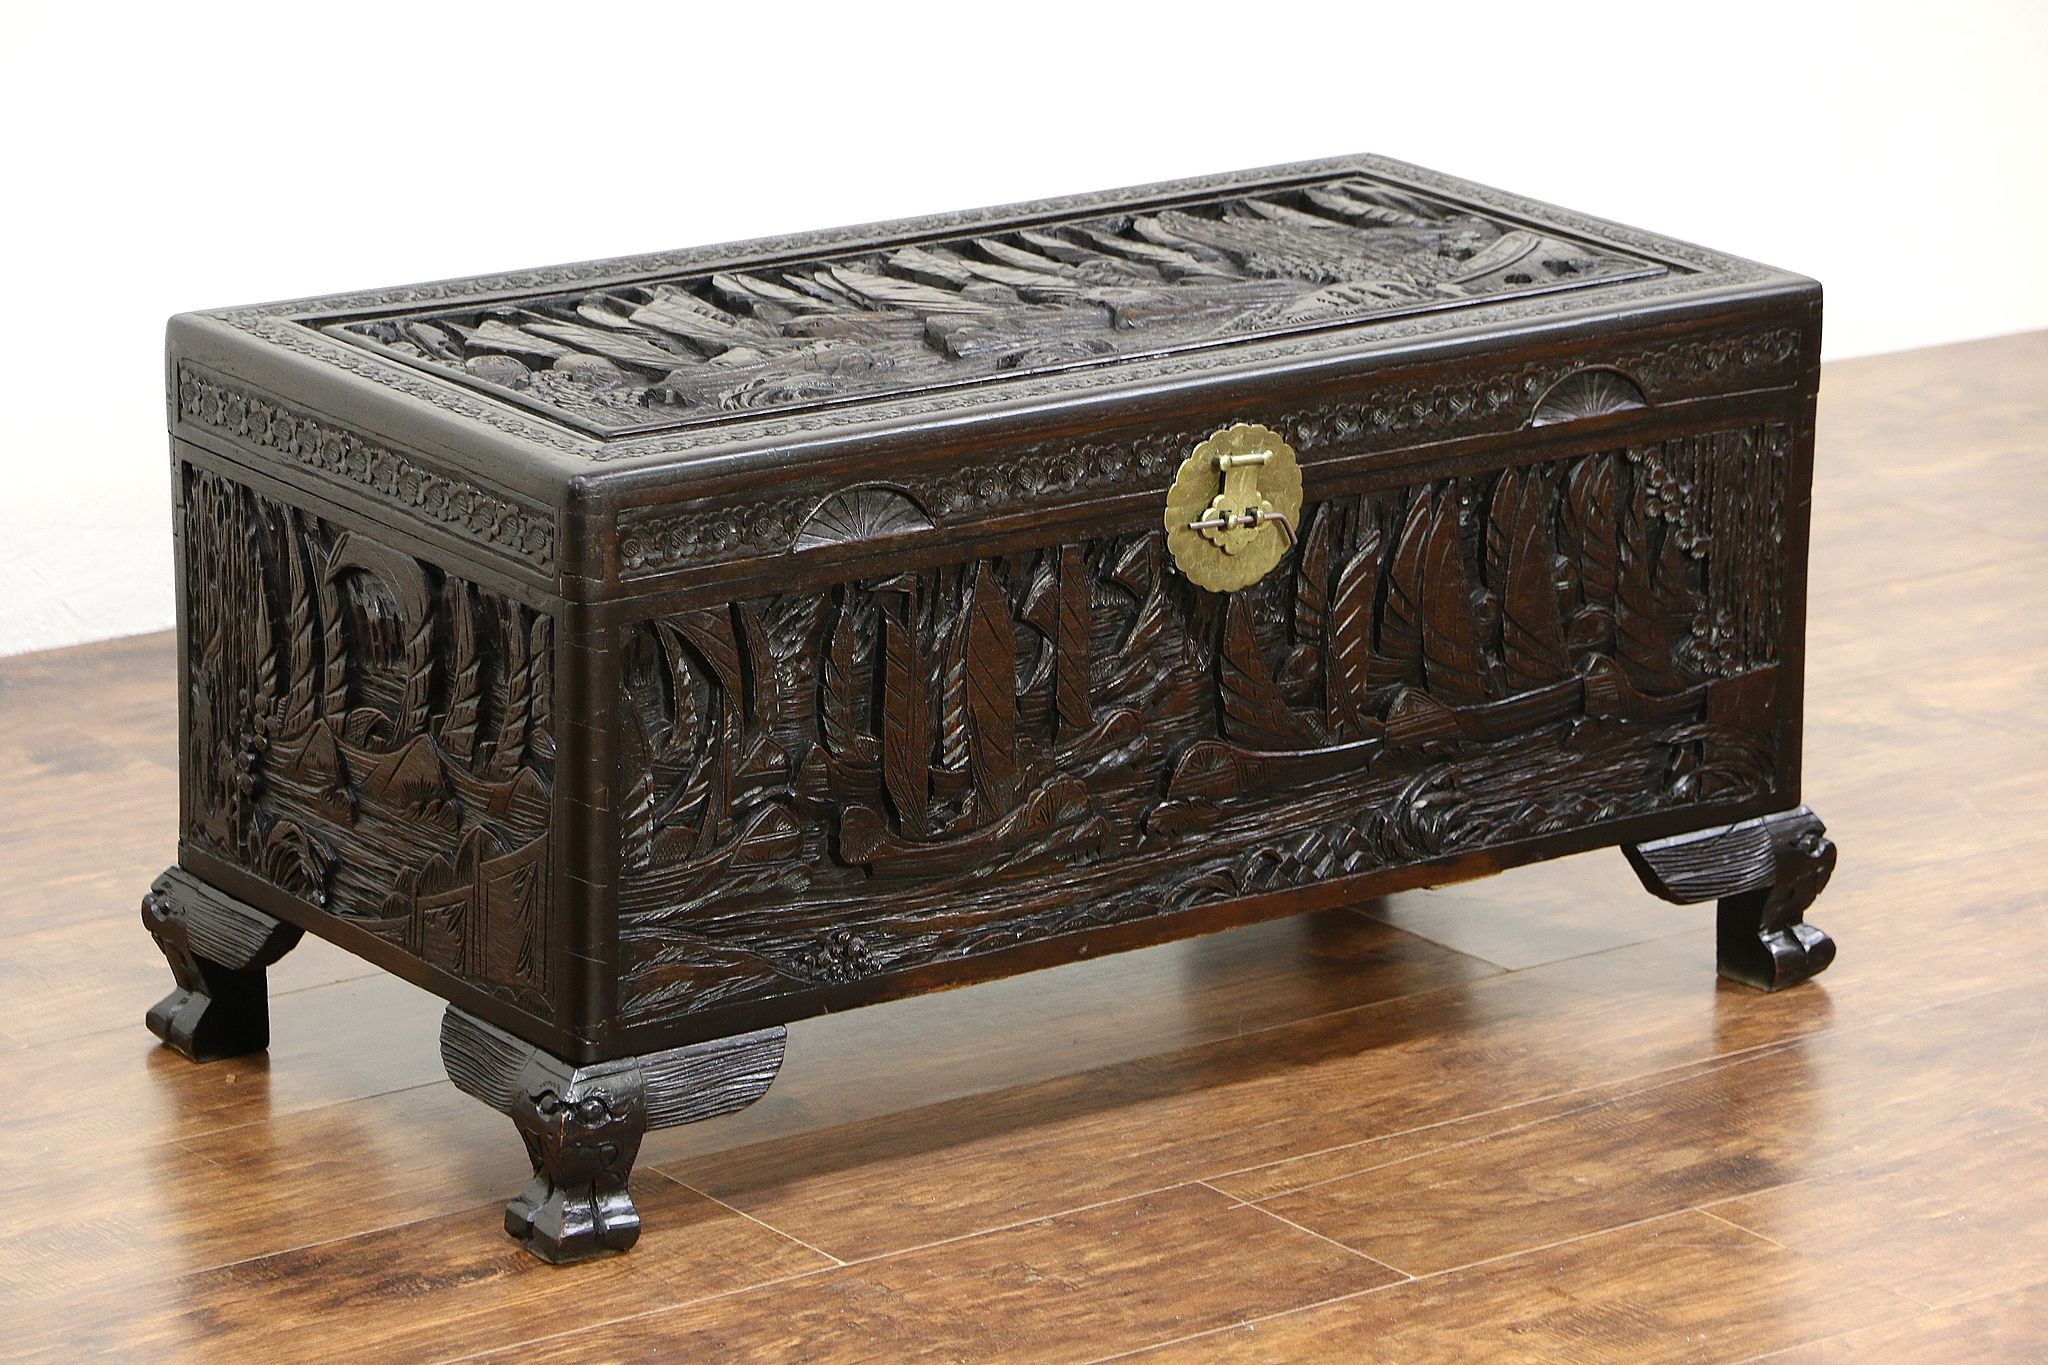 SOLD Chinese Camphor Wood Trunk Dowry Chest Or Coffee